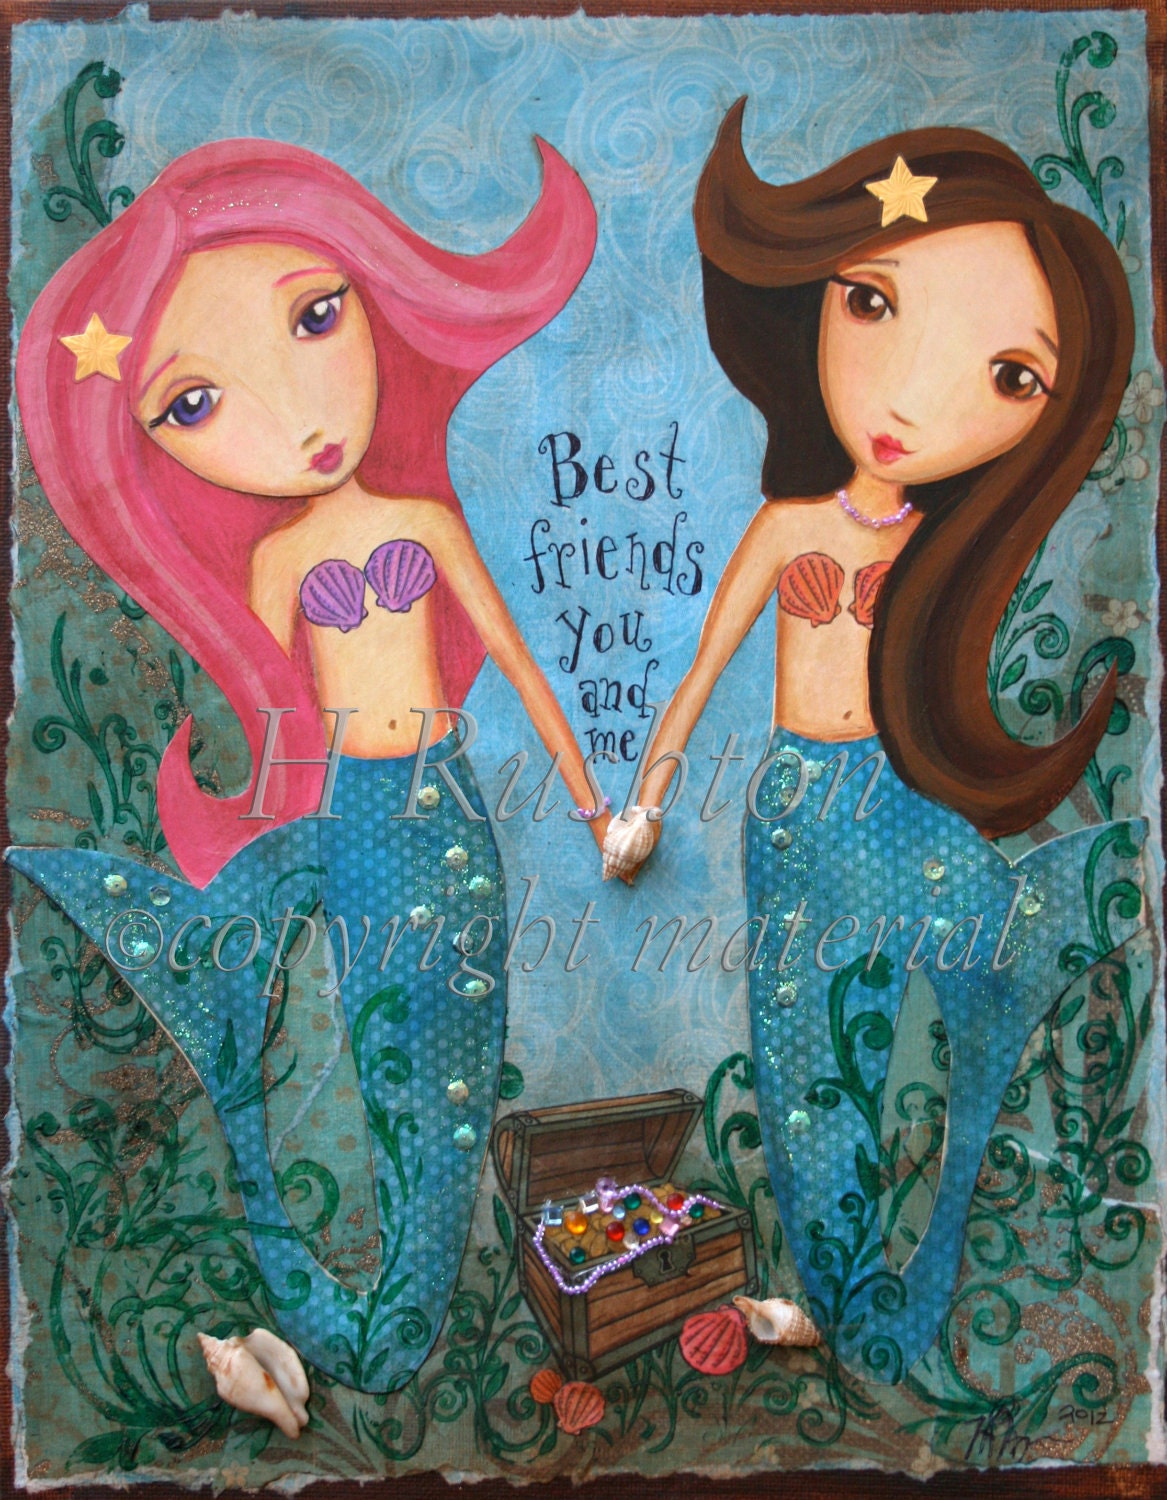 Mermaid Art Underwater Mermaid Friends Children by HRushtonArt